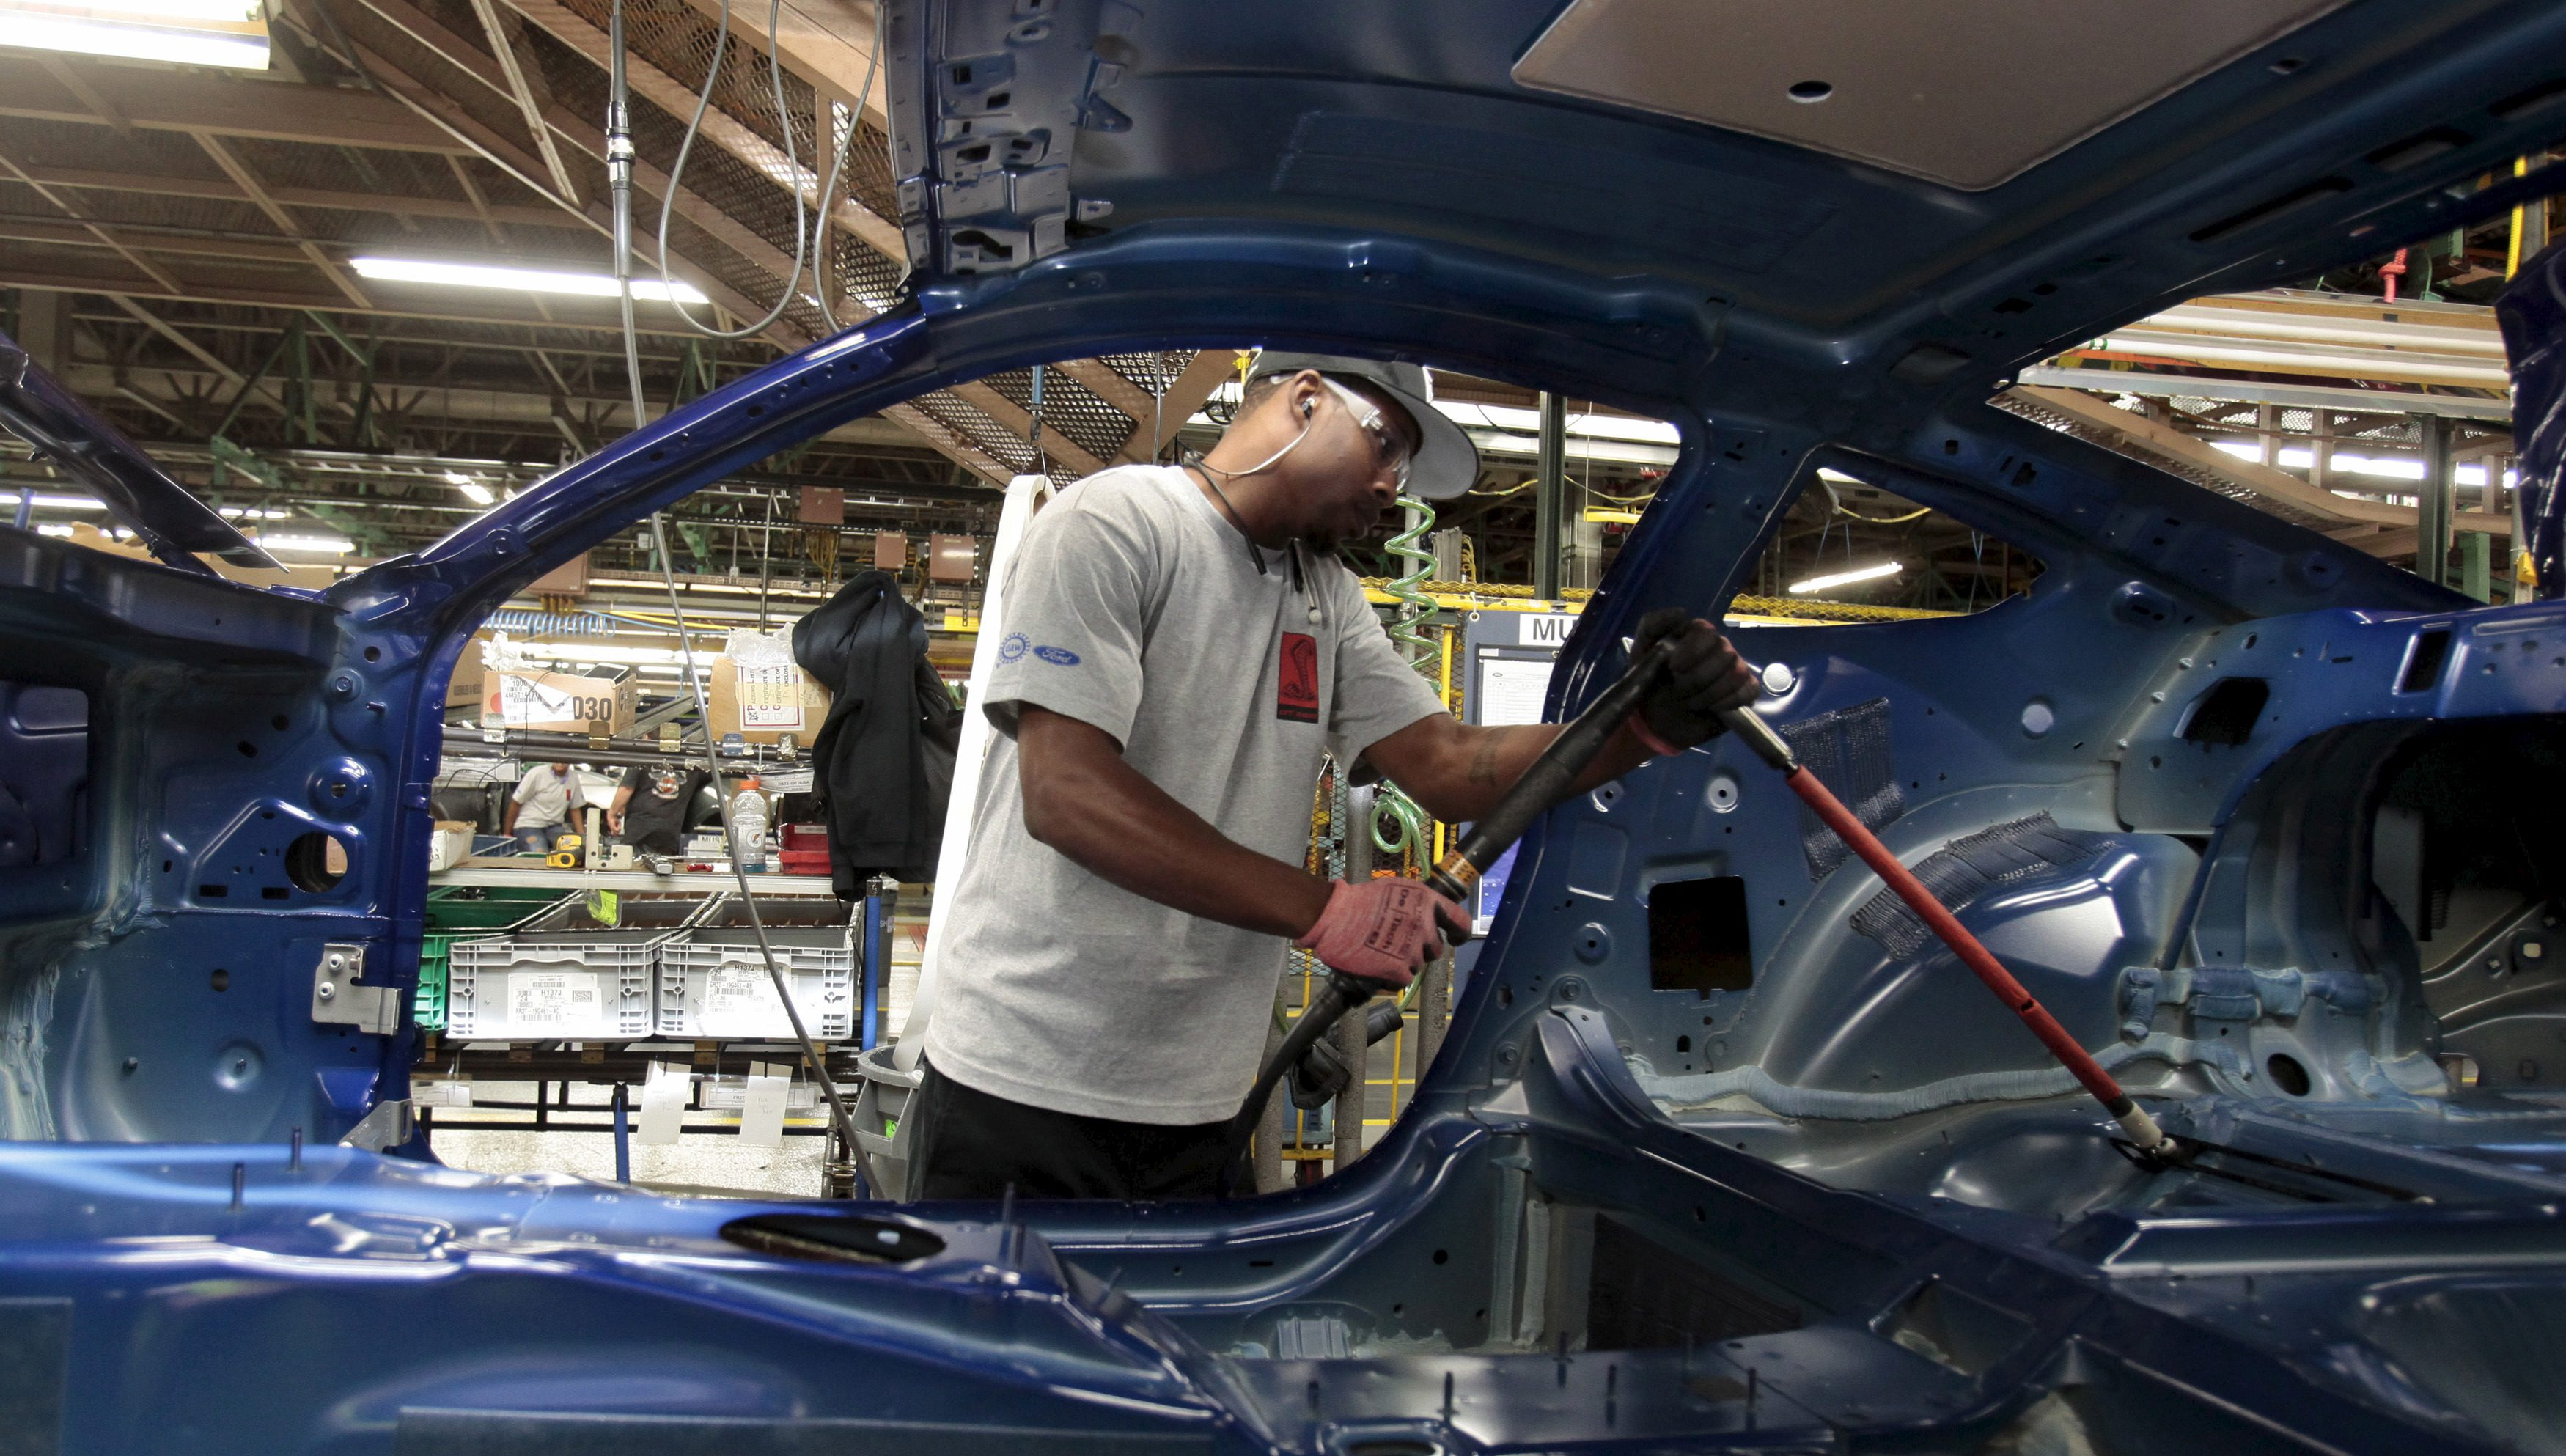 A Ford Motor assembly worker works on the frame of a 2015 Ford Mustang vehicle at the Ford Motor Flat Rock Assembly Plant in Flat Rock, Michigan, August 20, 2015. REUTERS/Rebecca Cook - RTX1OYPW